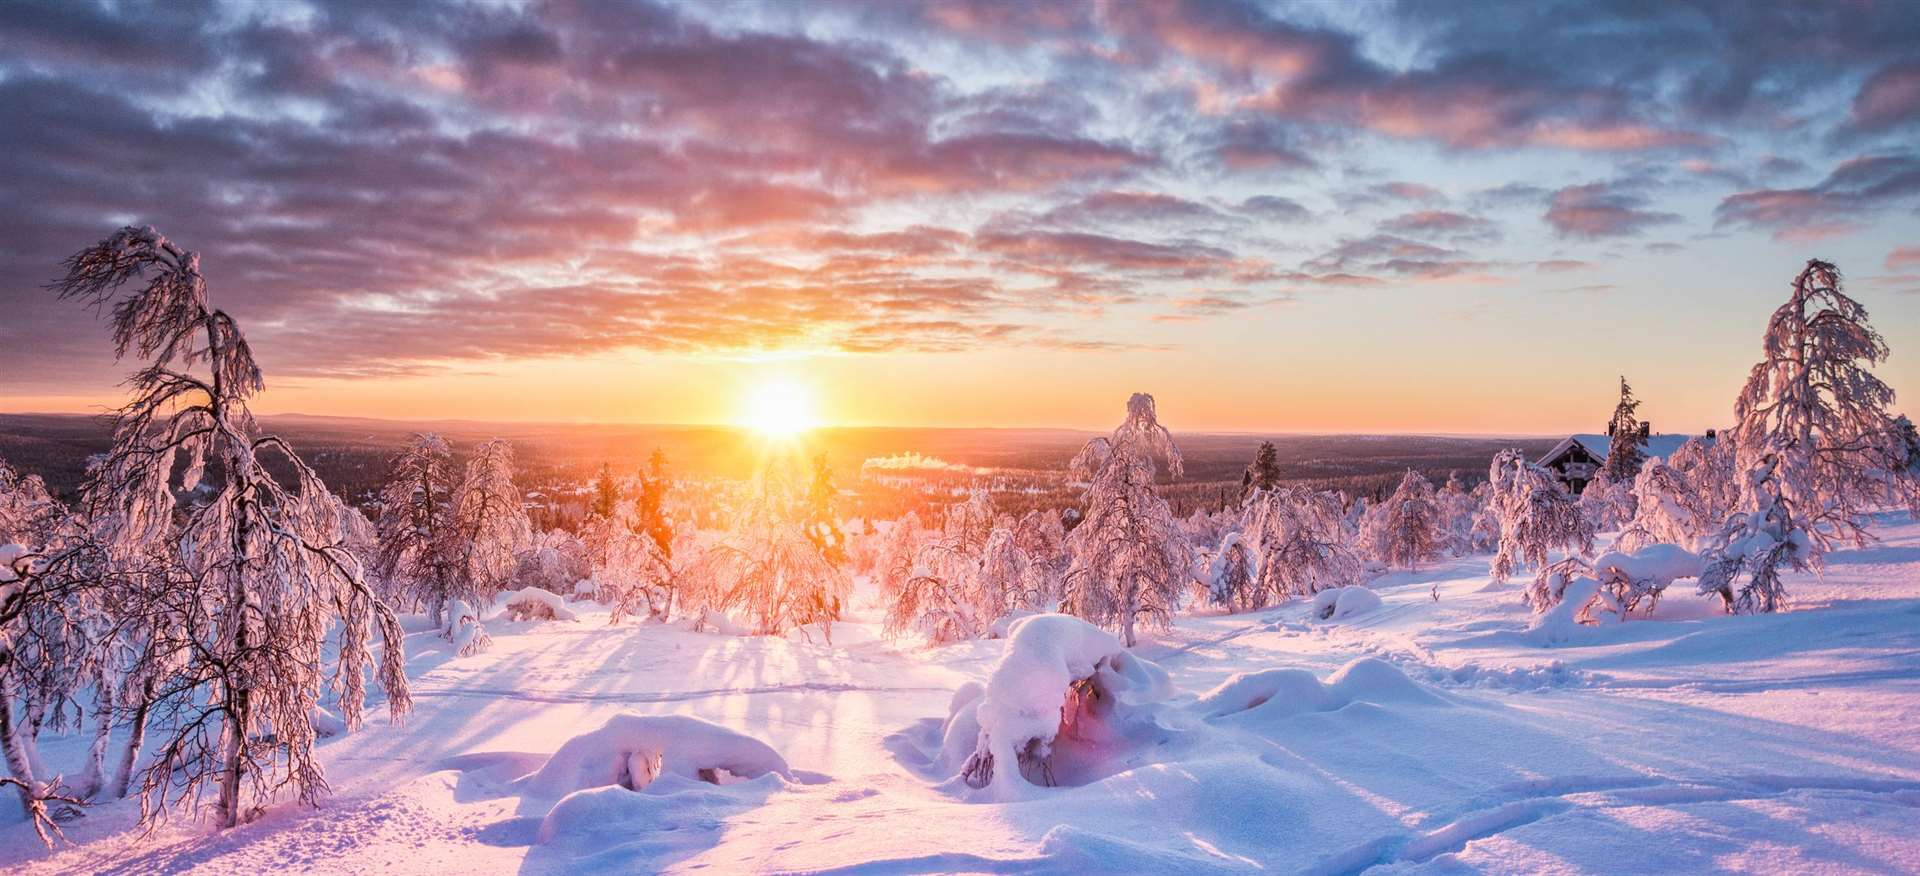 Swedish Lapland is one of vanishingly few places in Europe where you can get a sense of Mother Nature at her most raw and untamed.